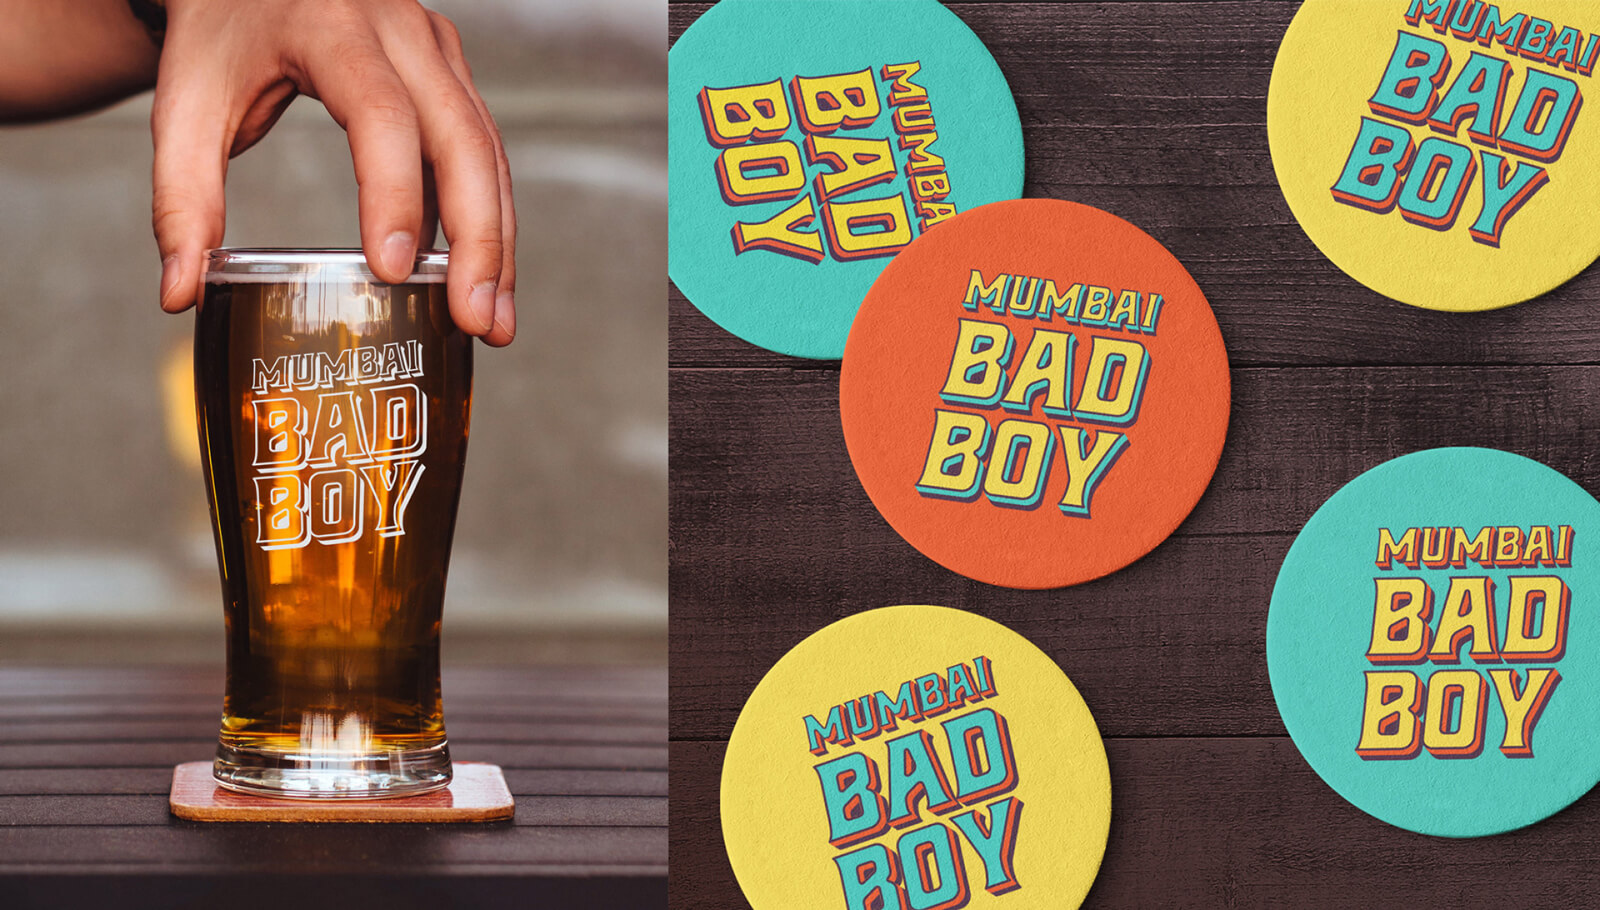 Mumbai Bad Boy branding and packaging